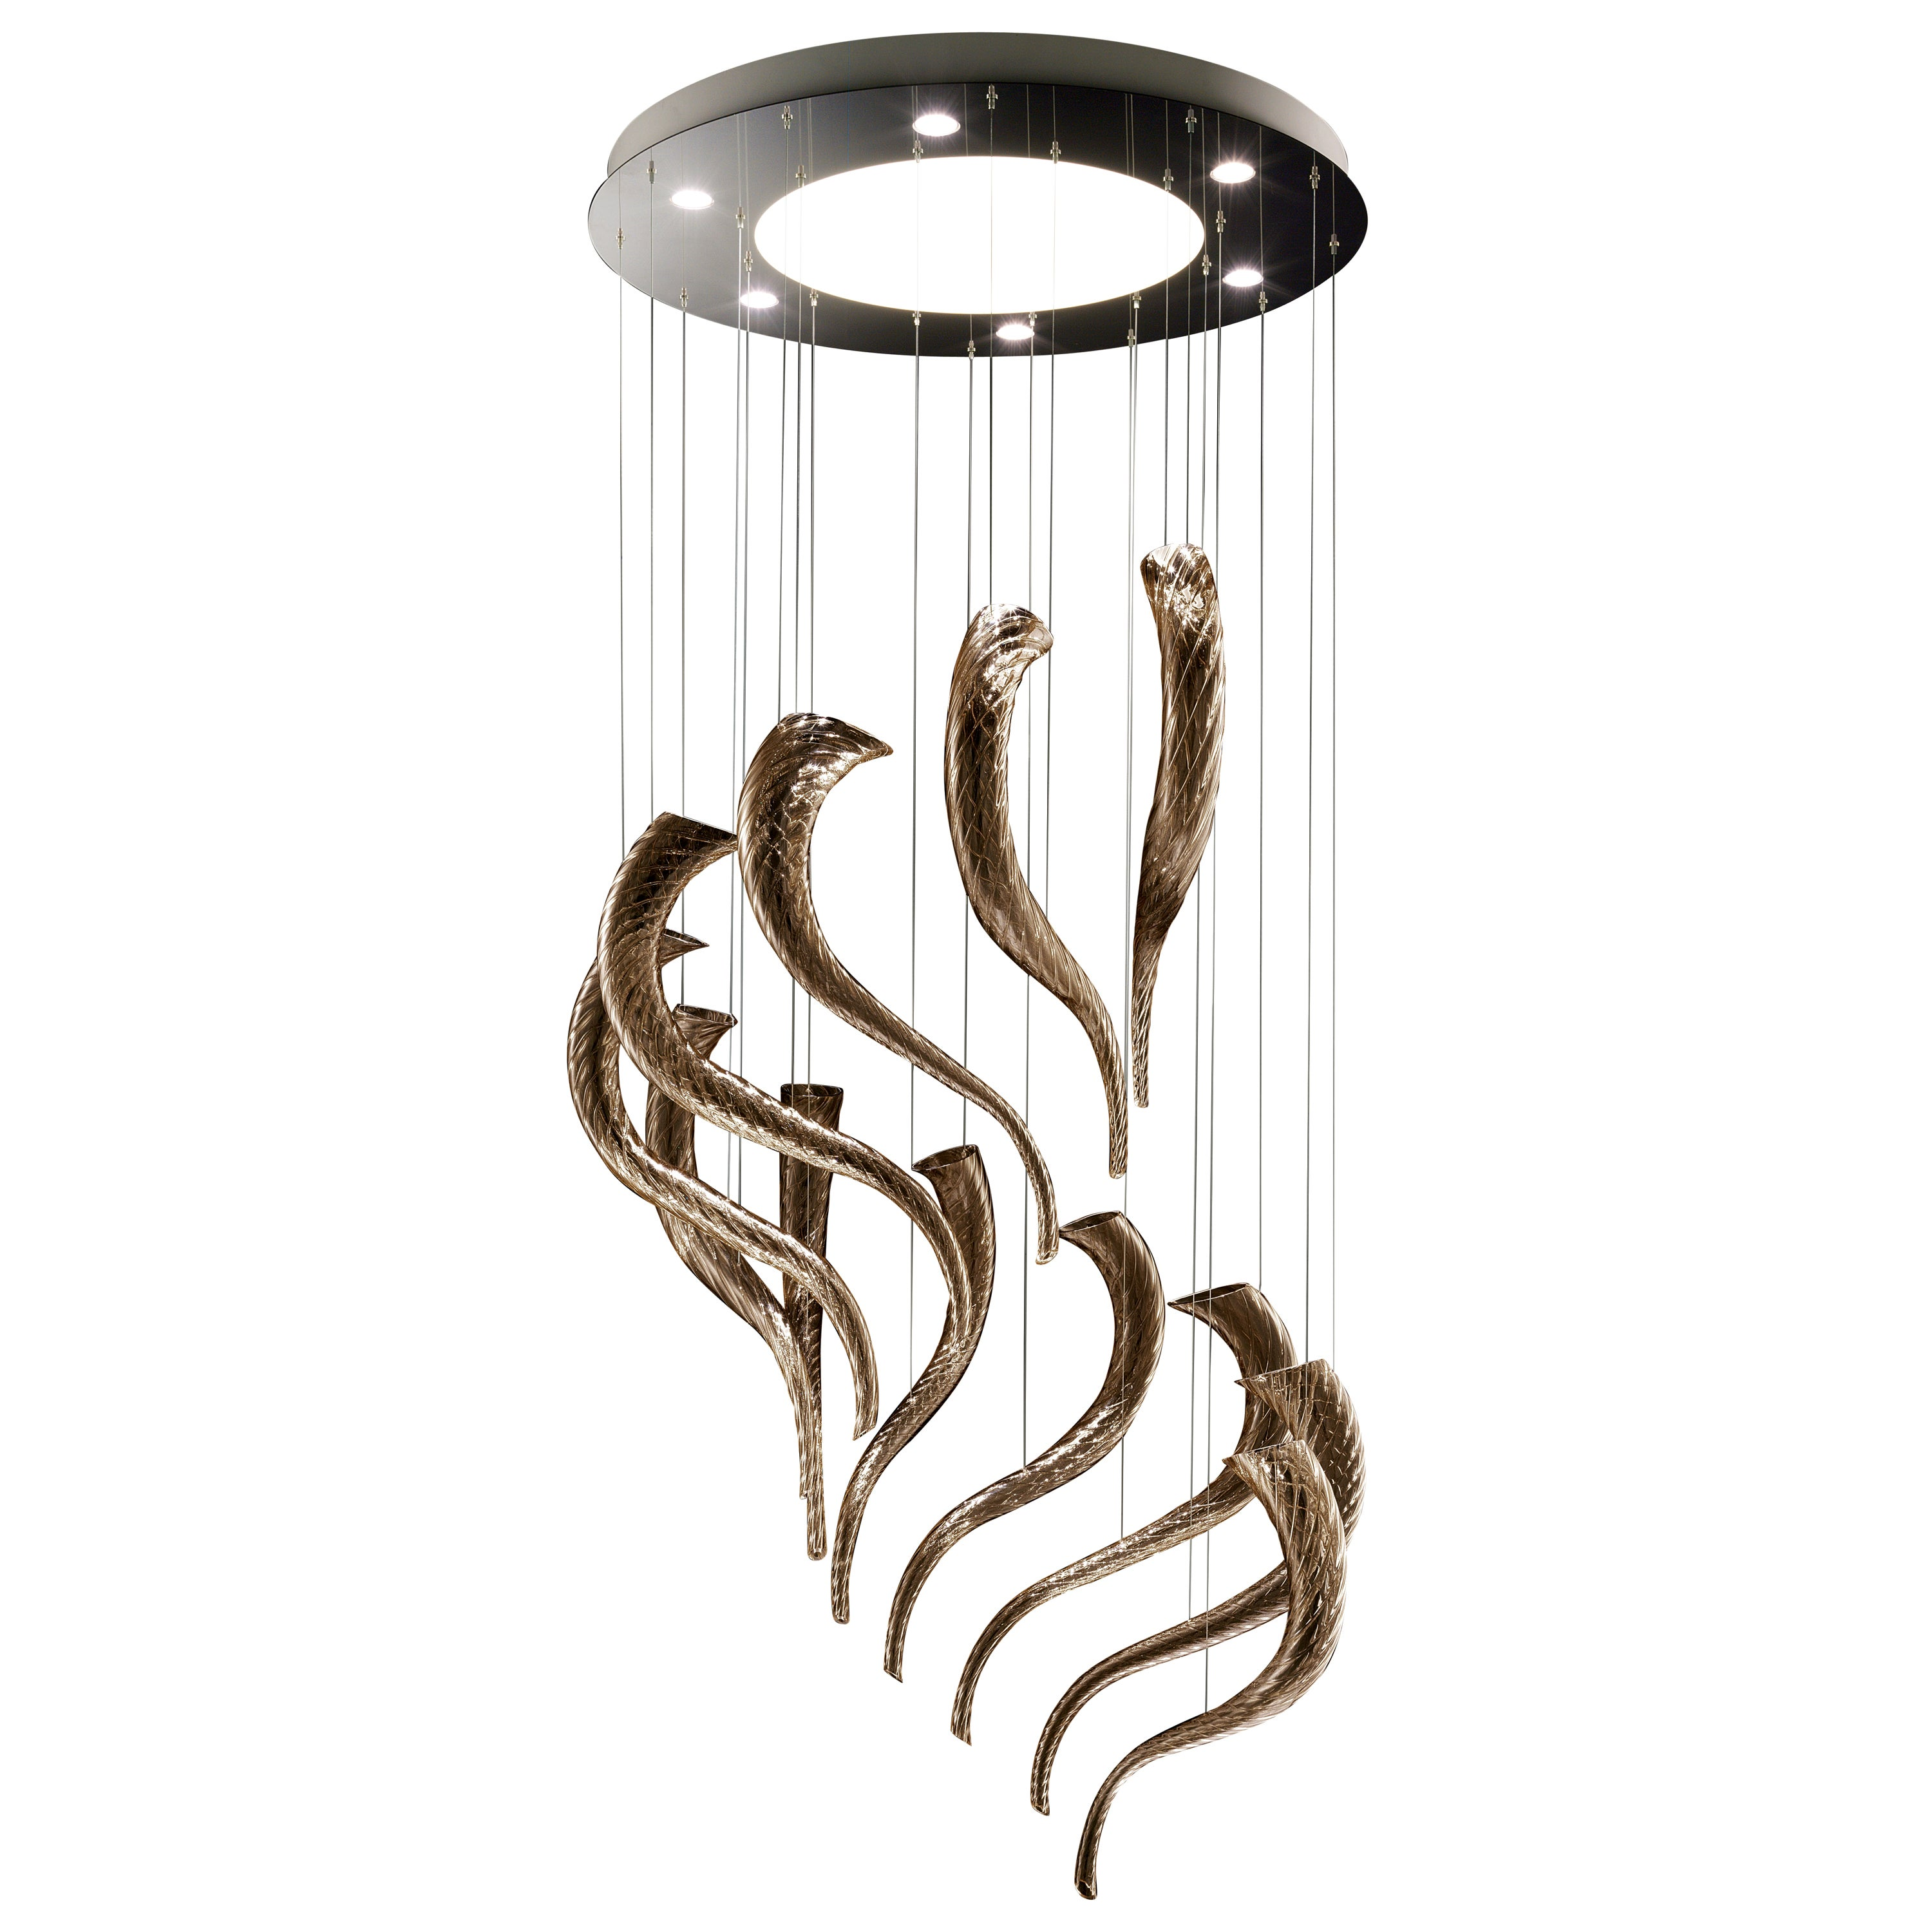 Swing7326 Suspension Lamp in Glass with Polished Chrome Finish, by Barovier&Toso